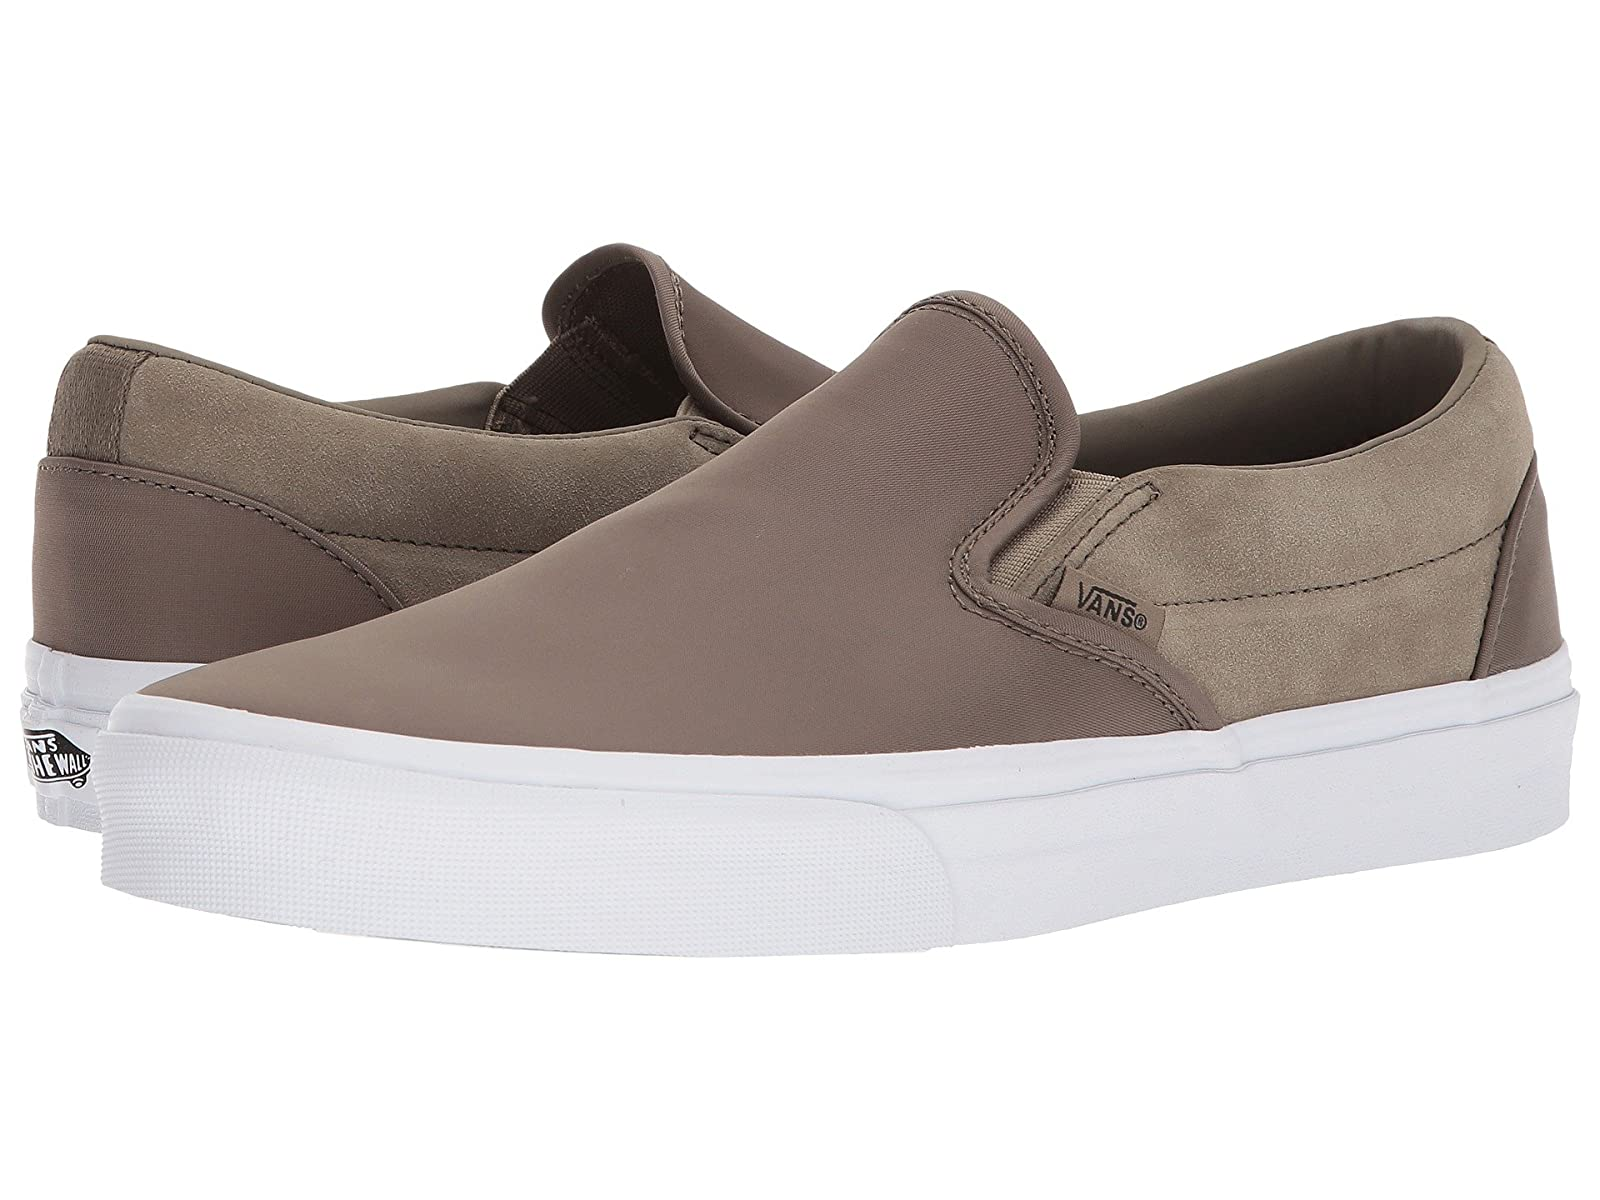 Men's/Women's:Vans Men's/Women's:Vans Men's/Women's:Vans Classic Slip-On™ : Affordable 34d68e